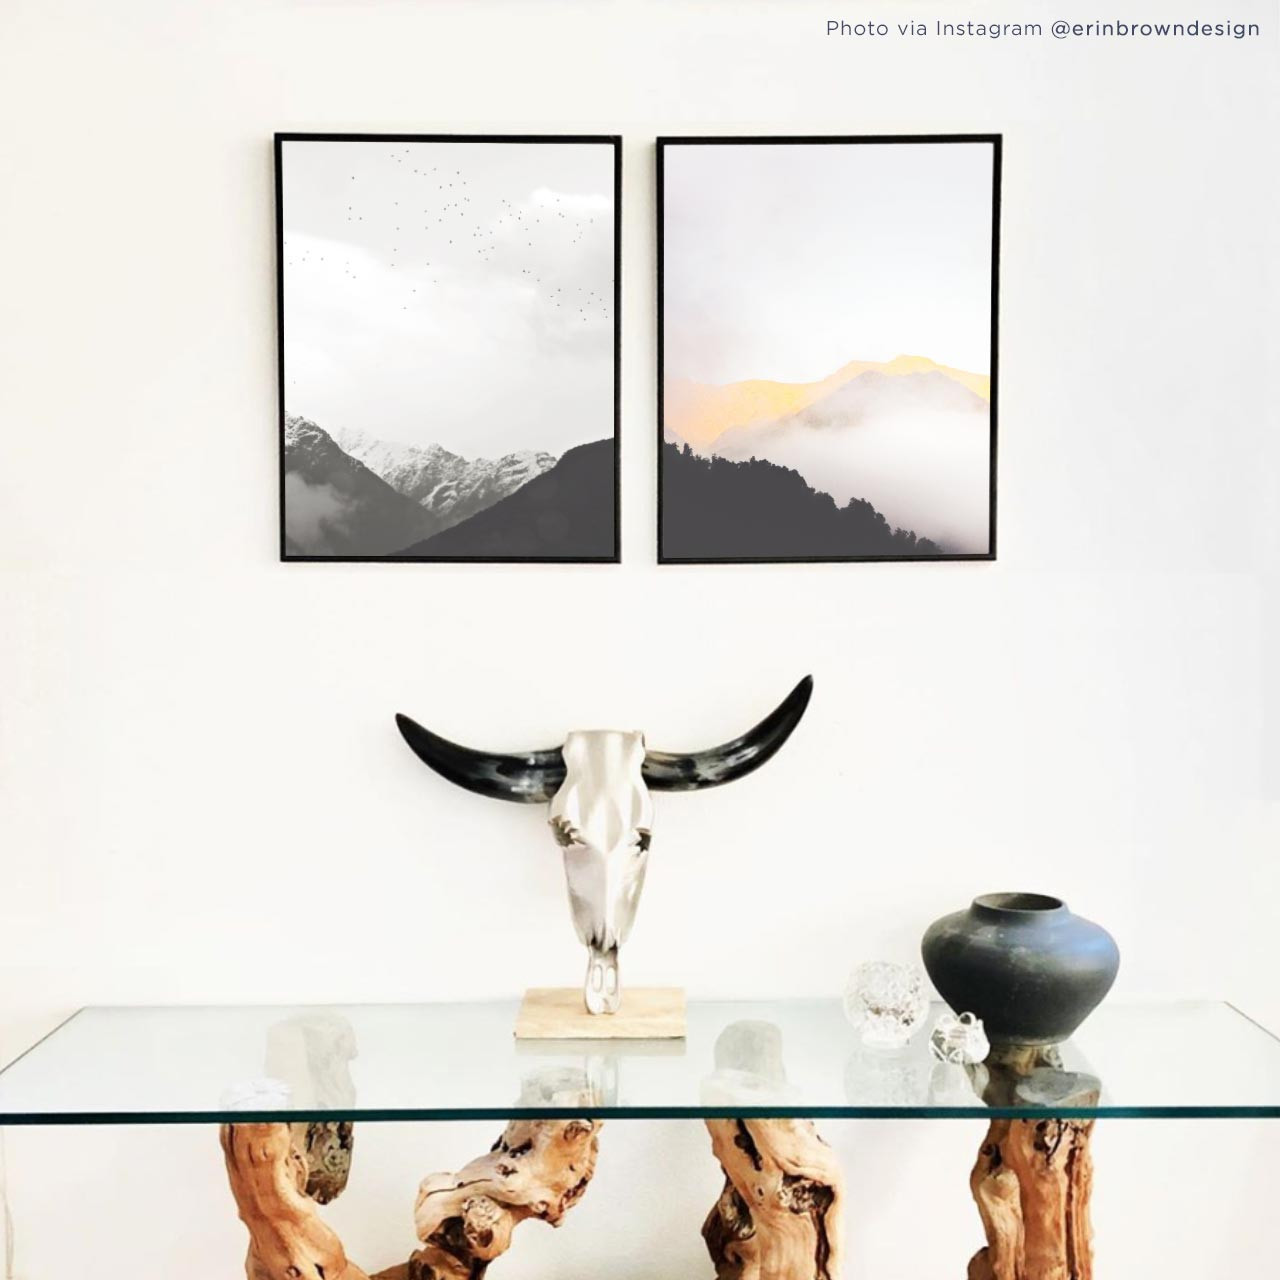 'Mountain Mist' and 'Fly with Me' Photography Posters from The Printed Home